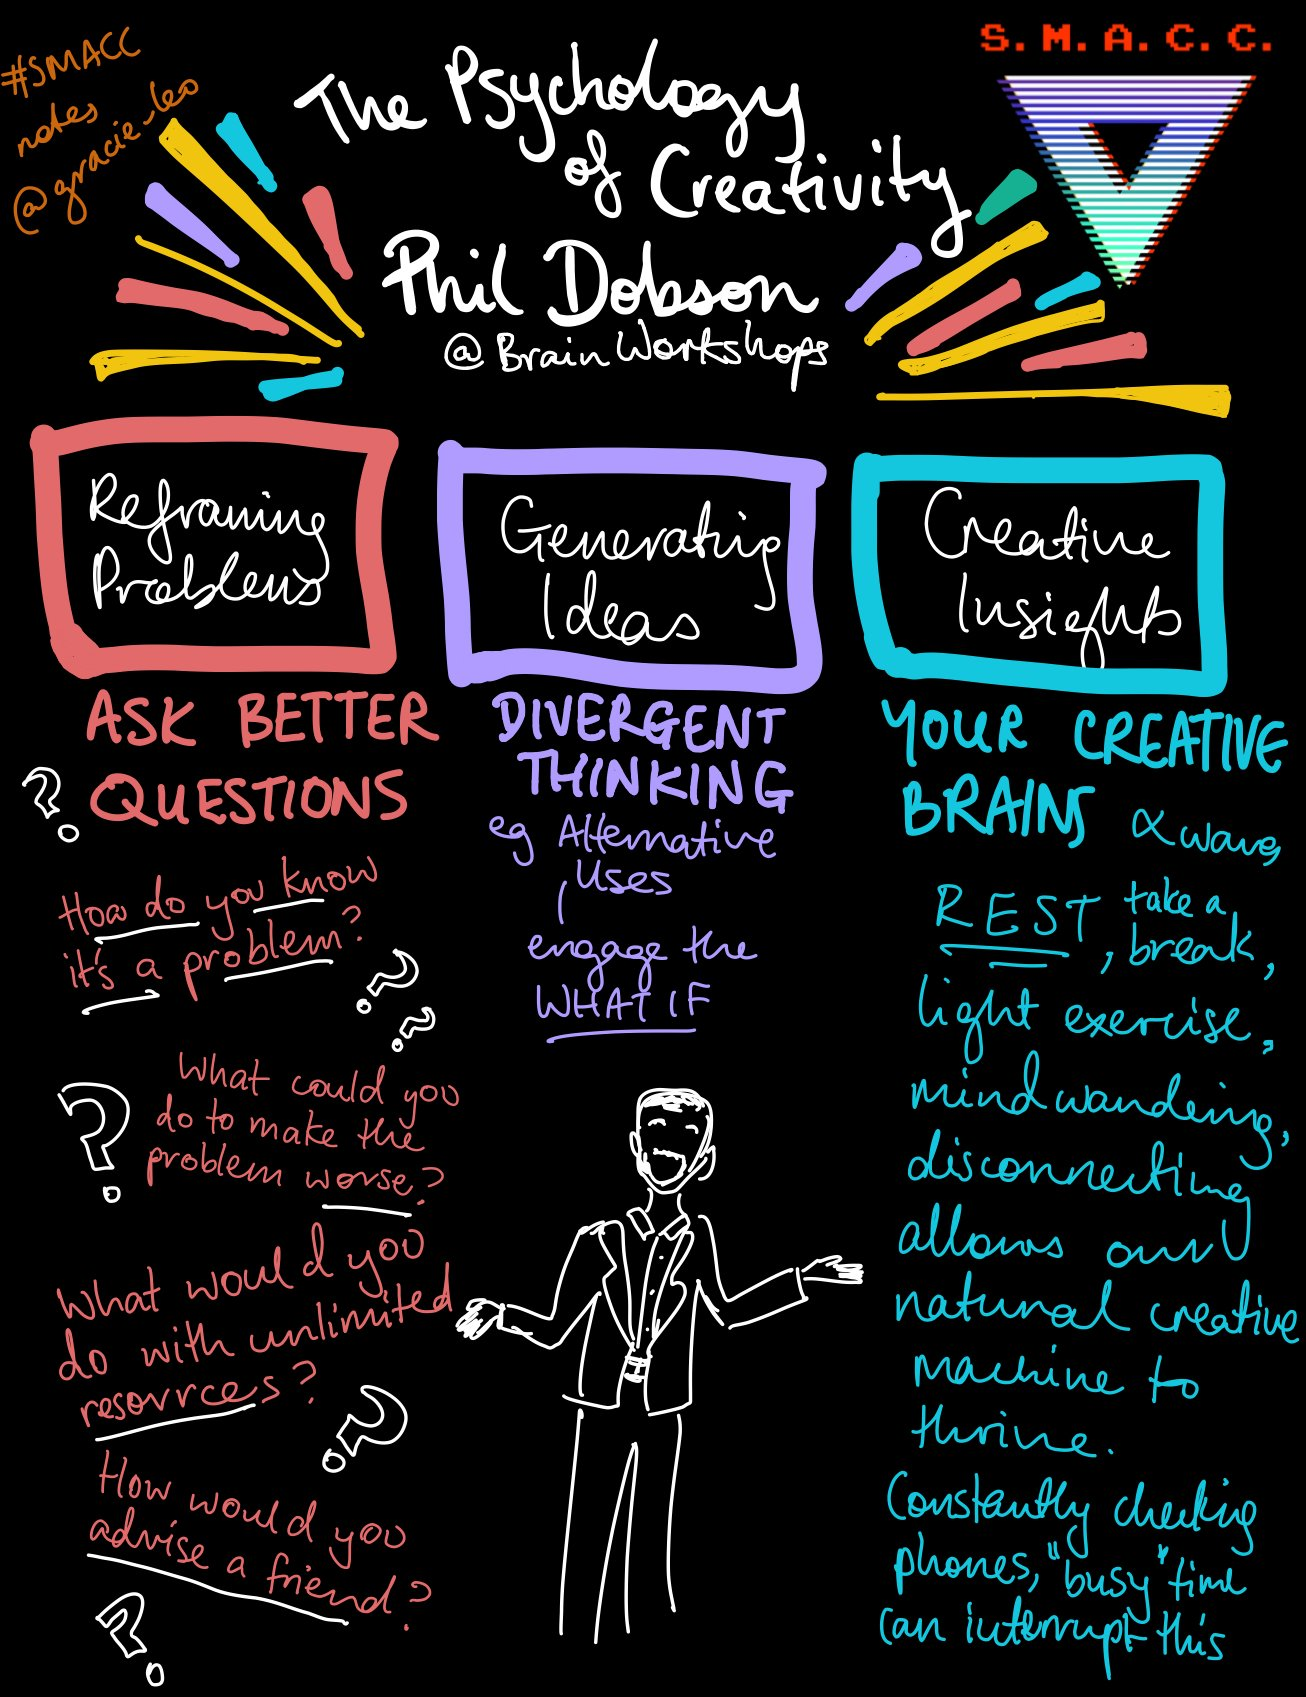 The Psychology of Creativity with Phil Dobson